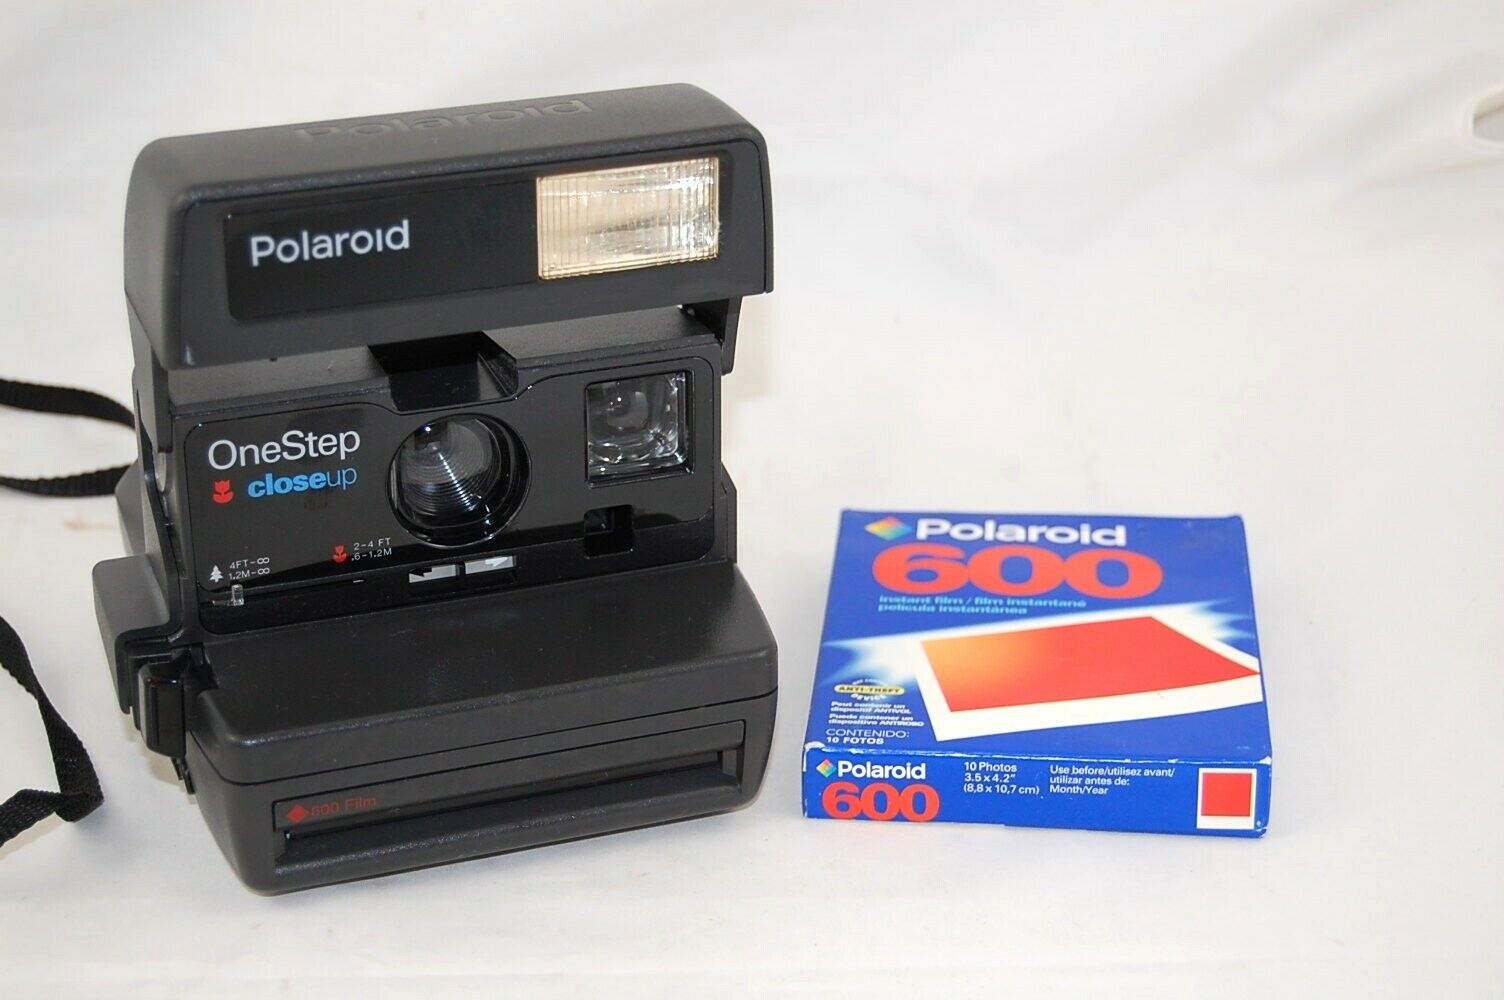 Polaroid OneStep Closeup Instant Camera And Exp. Film Pack - $15.50